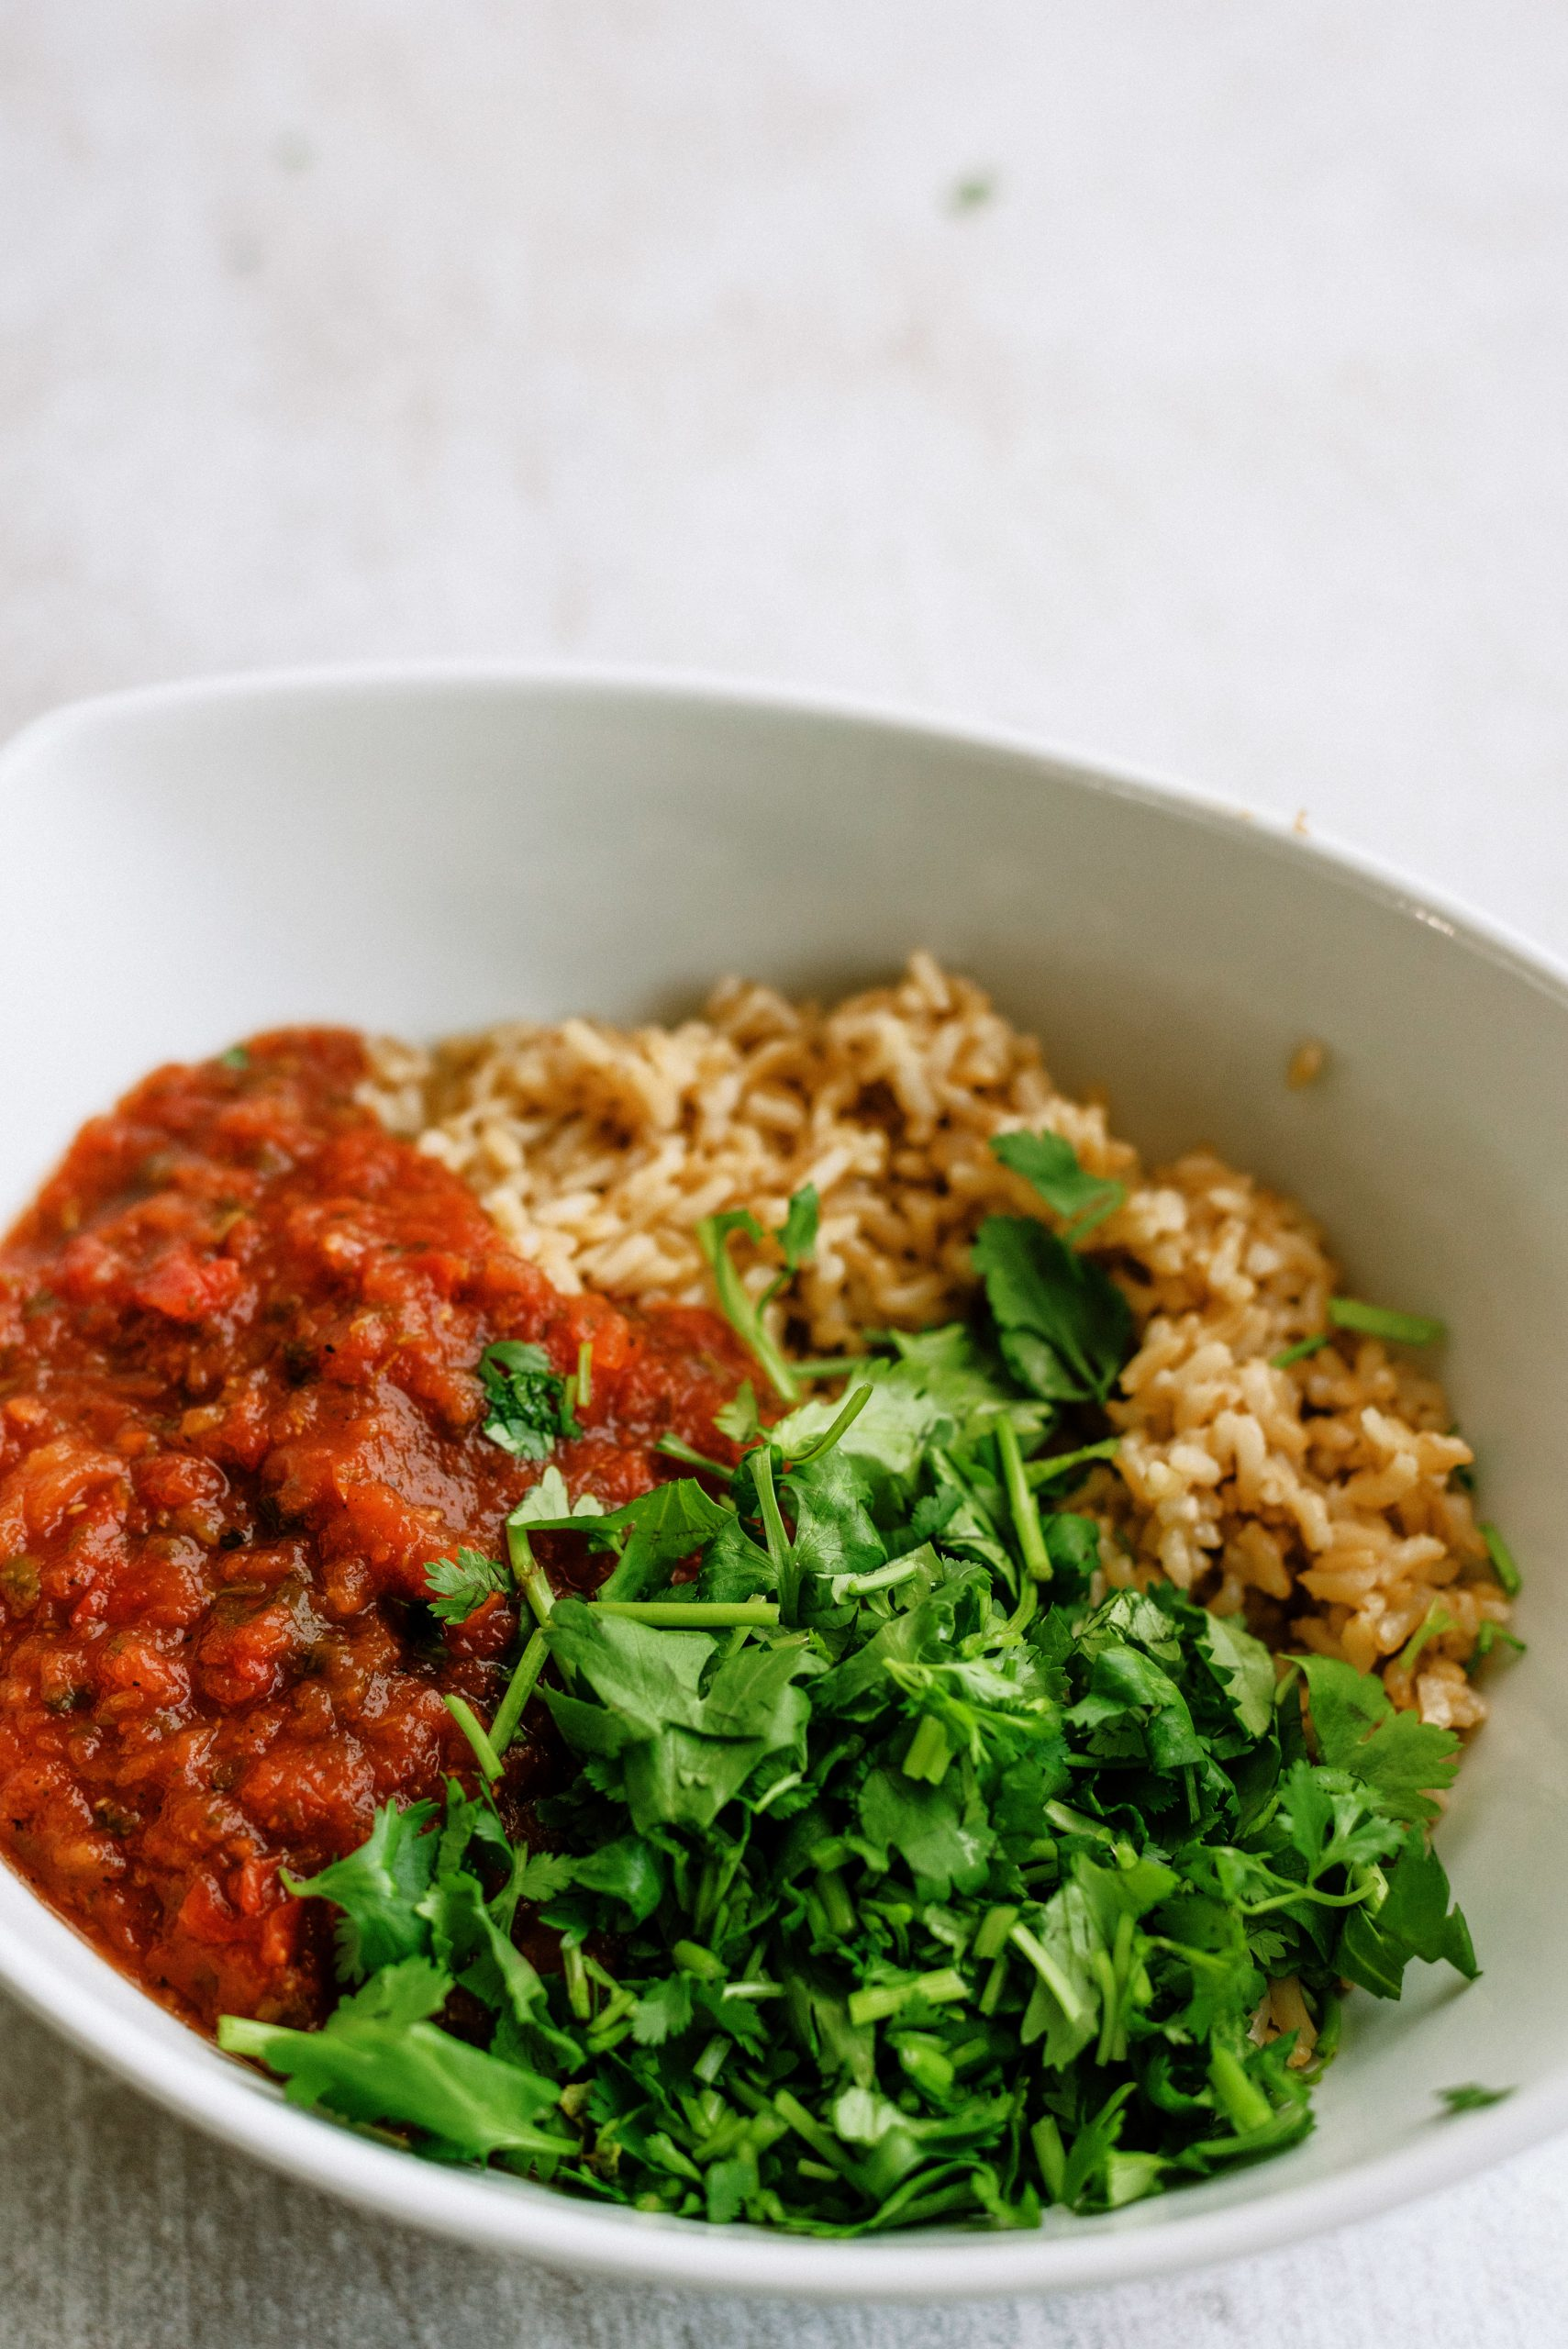 Rice and Salsa mixture with ingredients in a white bowl